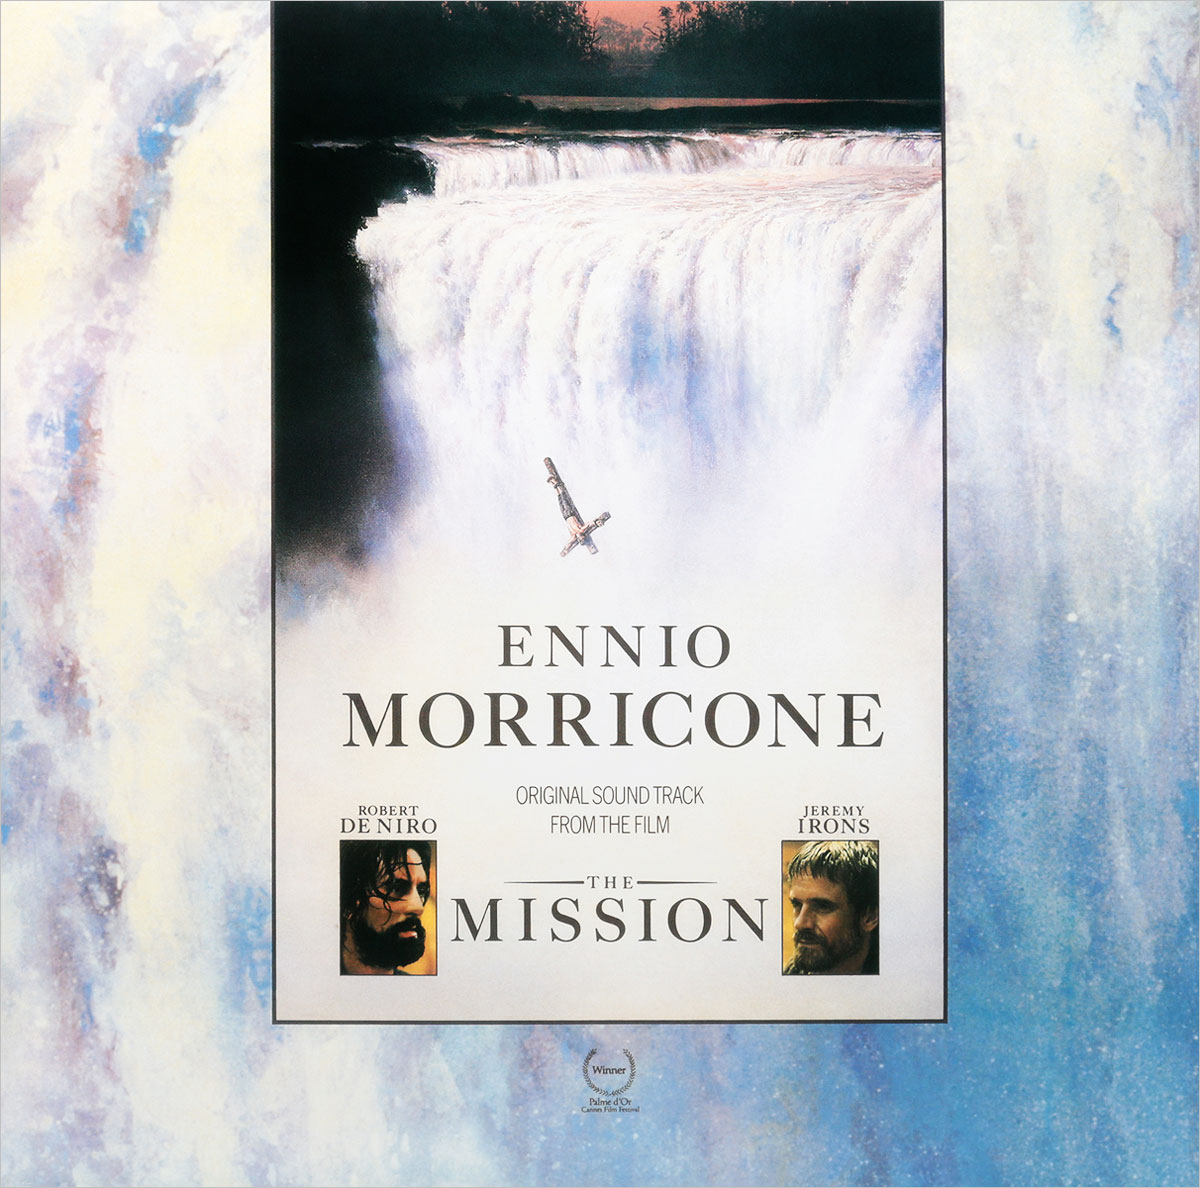 Эннио Морриконе Ennio Morricone. The Mission. Original Soundtrack (LP) саундтрек саундтрекennio morricone the mission 180 gr